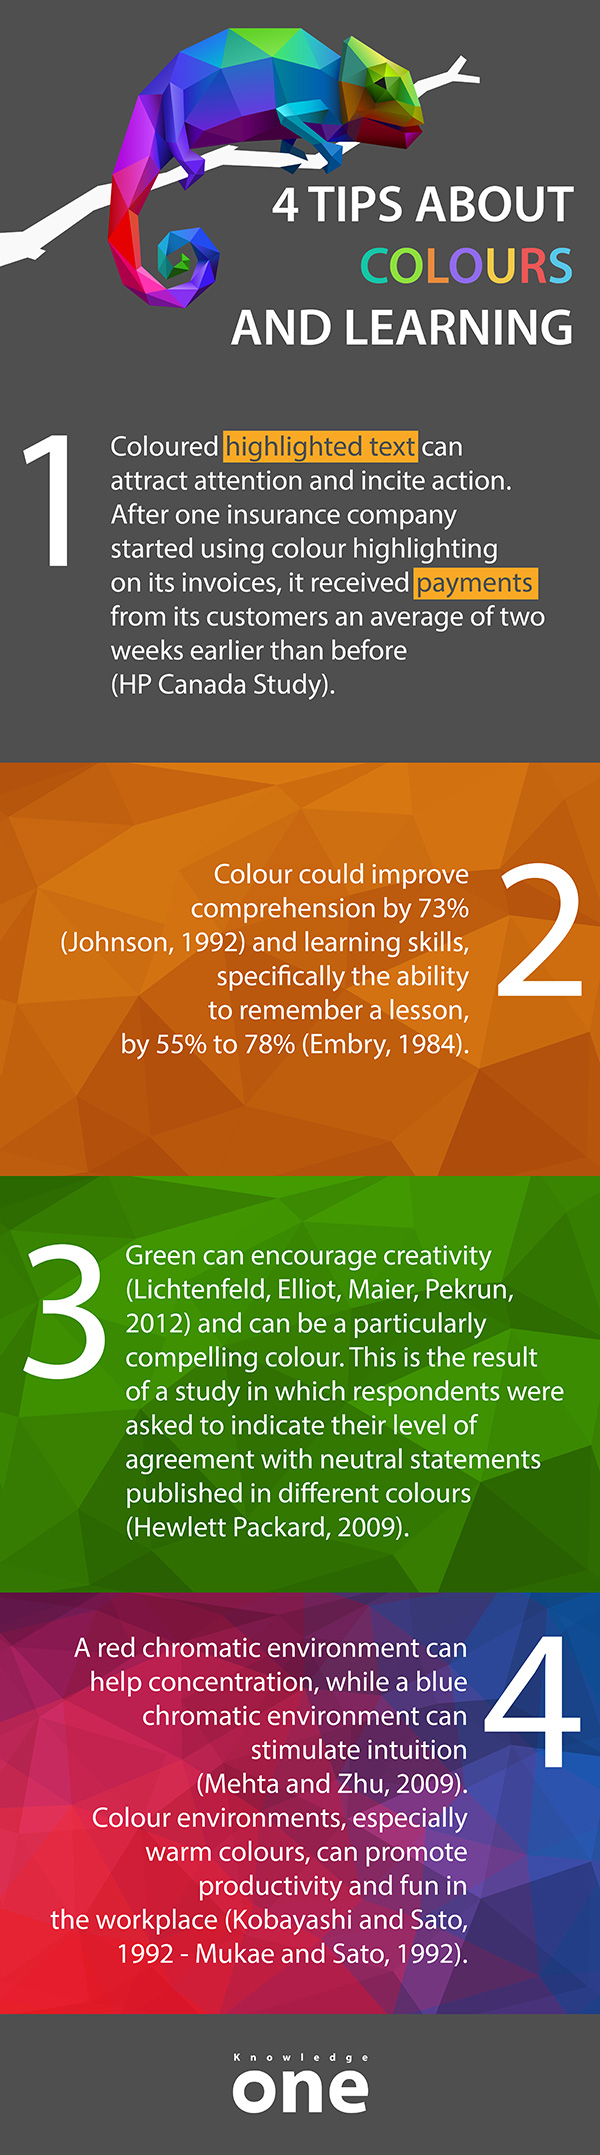 Infographic about the use of colors and learning